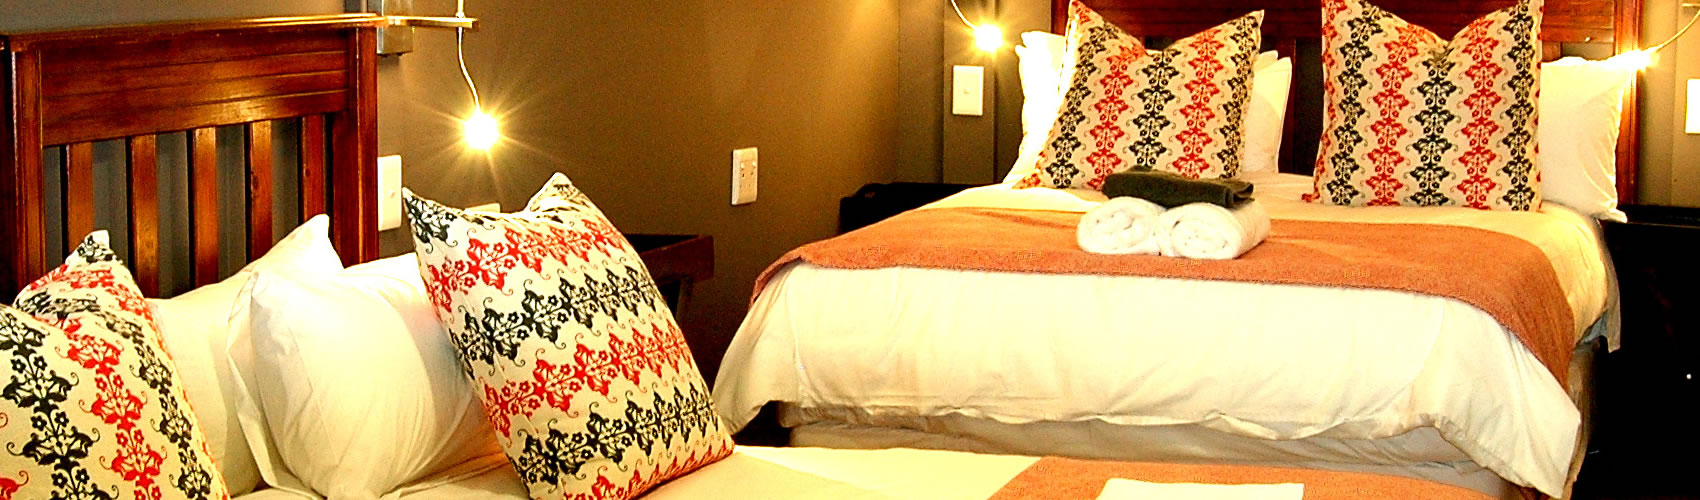 Baleens Hotel, Hermanus, baleens restaurant and bar, accommodation, cosy and comfortable, child friendly